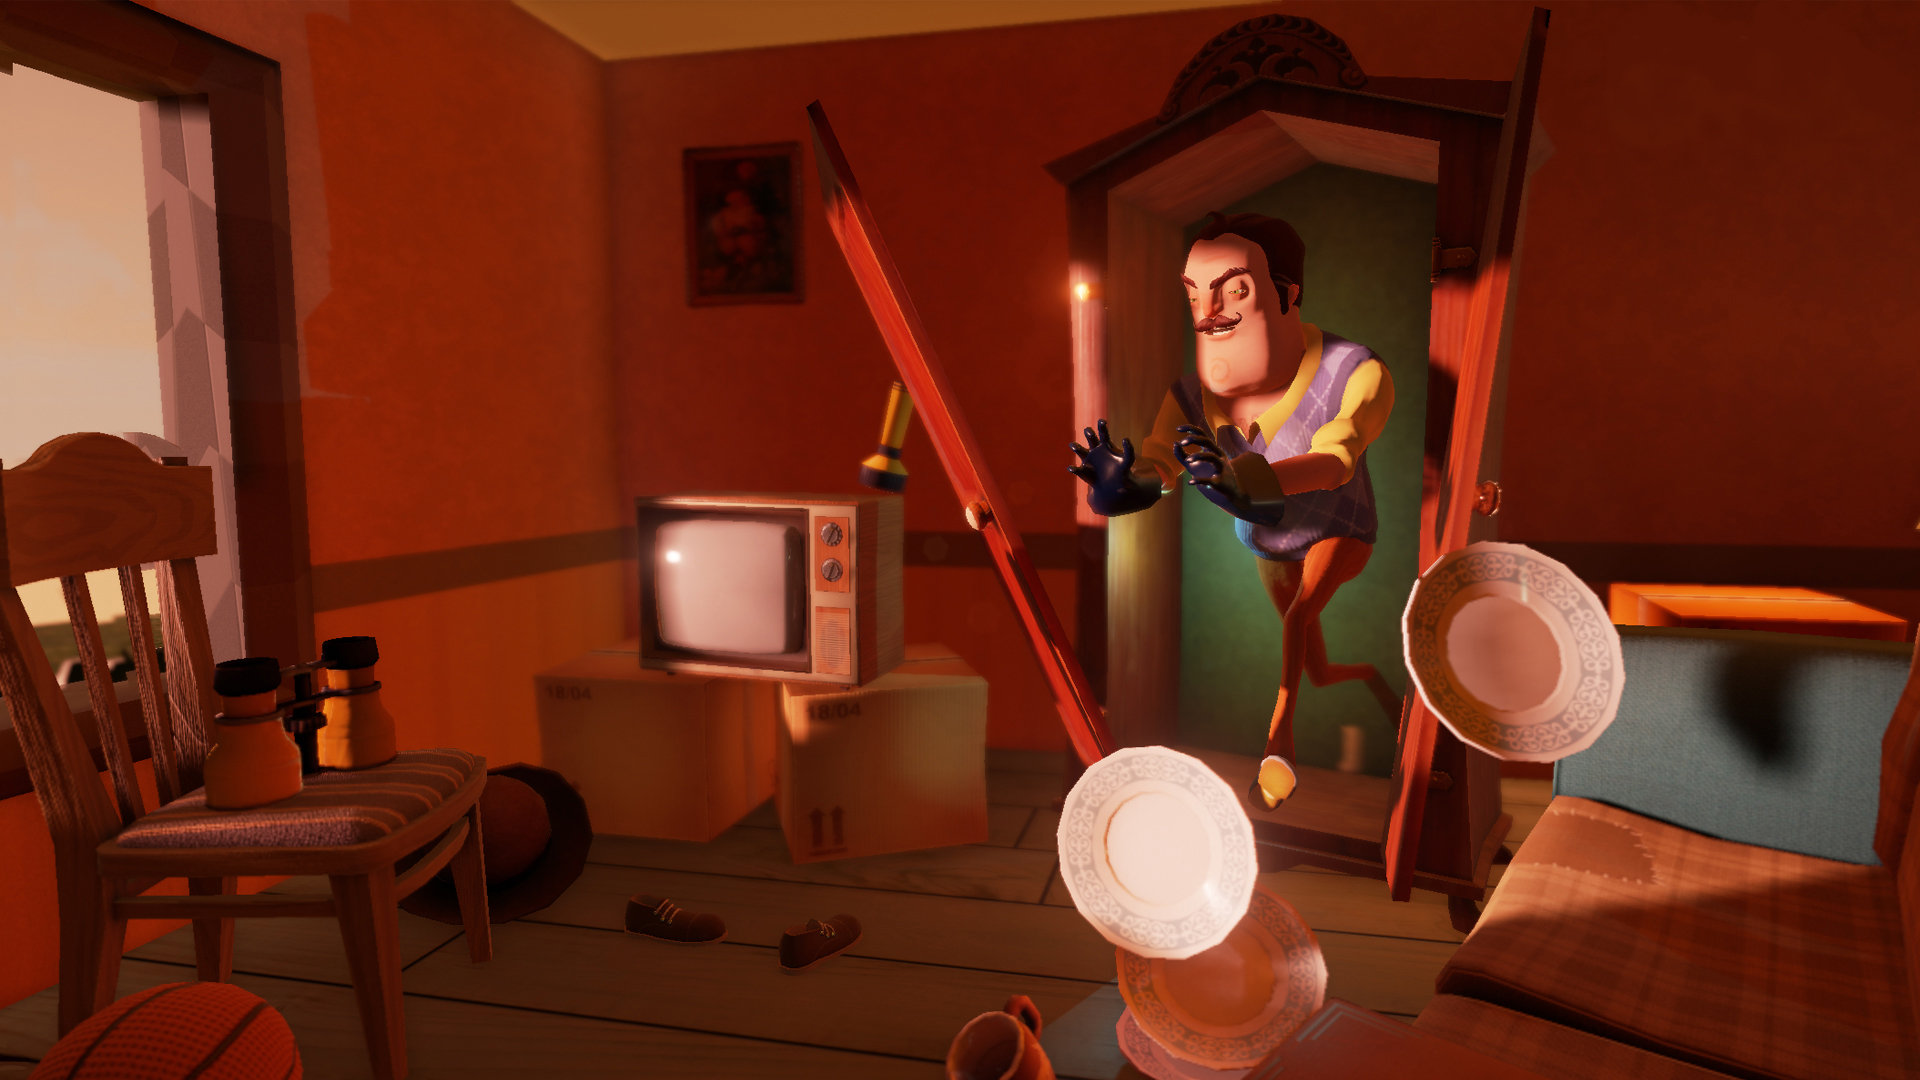 Find the best laptop for Hello Neighbor